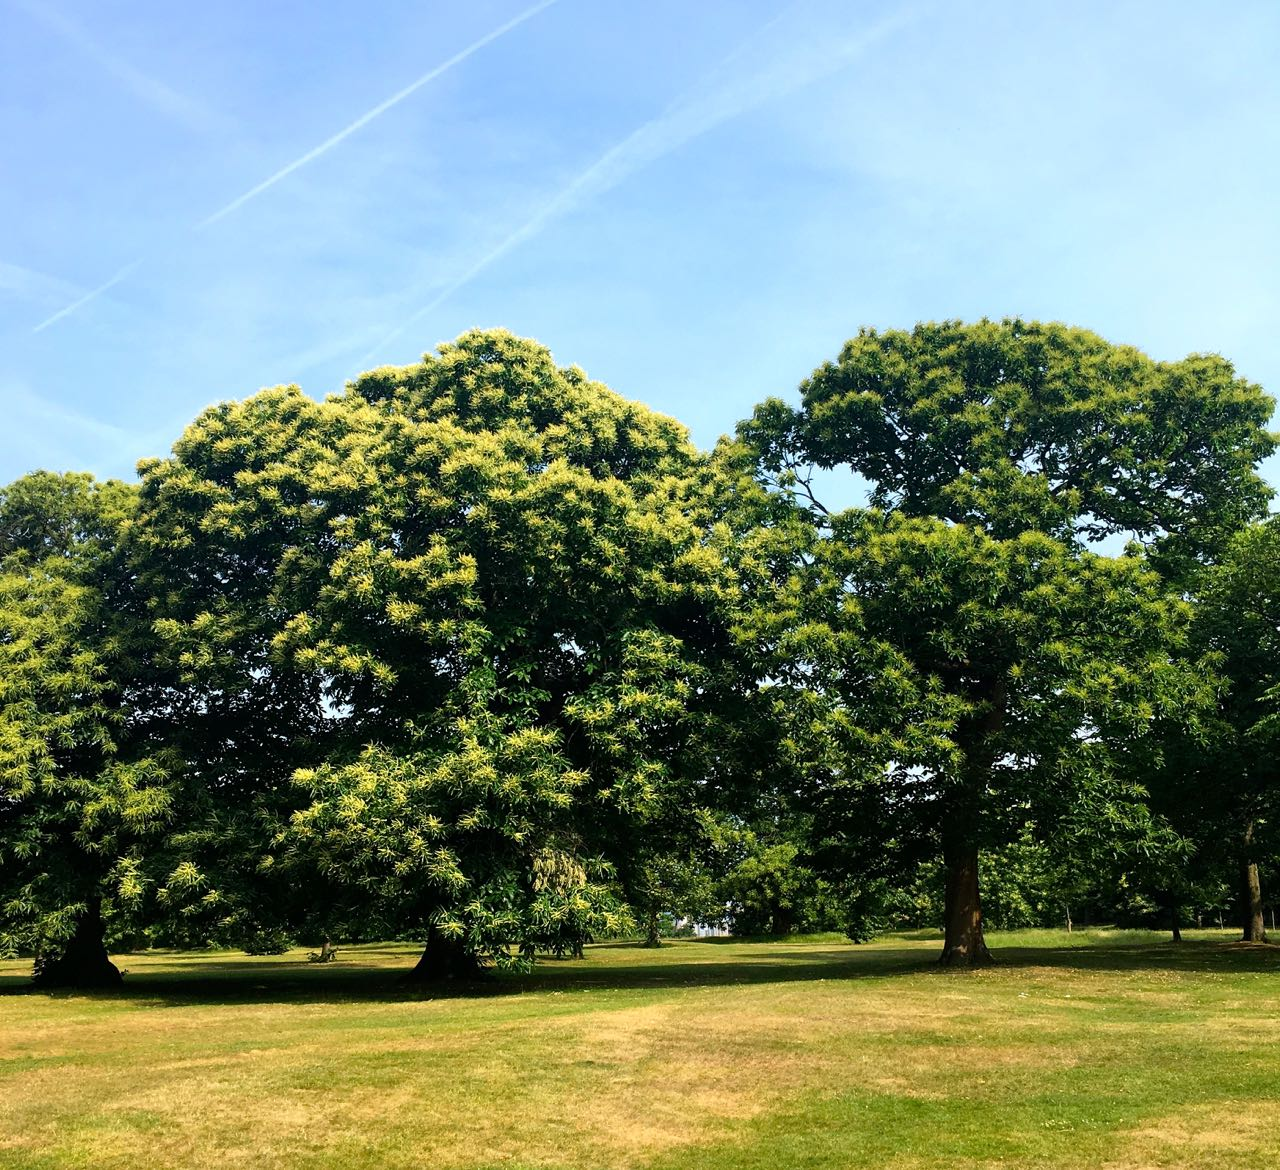 Sometimes greenwich park doesn't feel like greenwich park at all